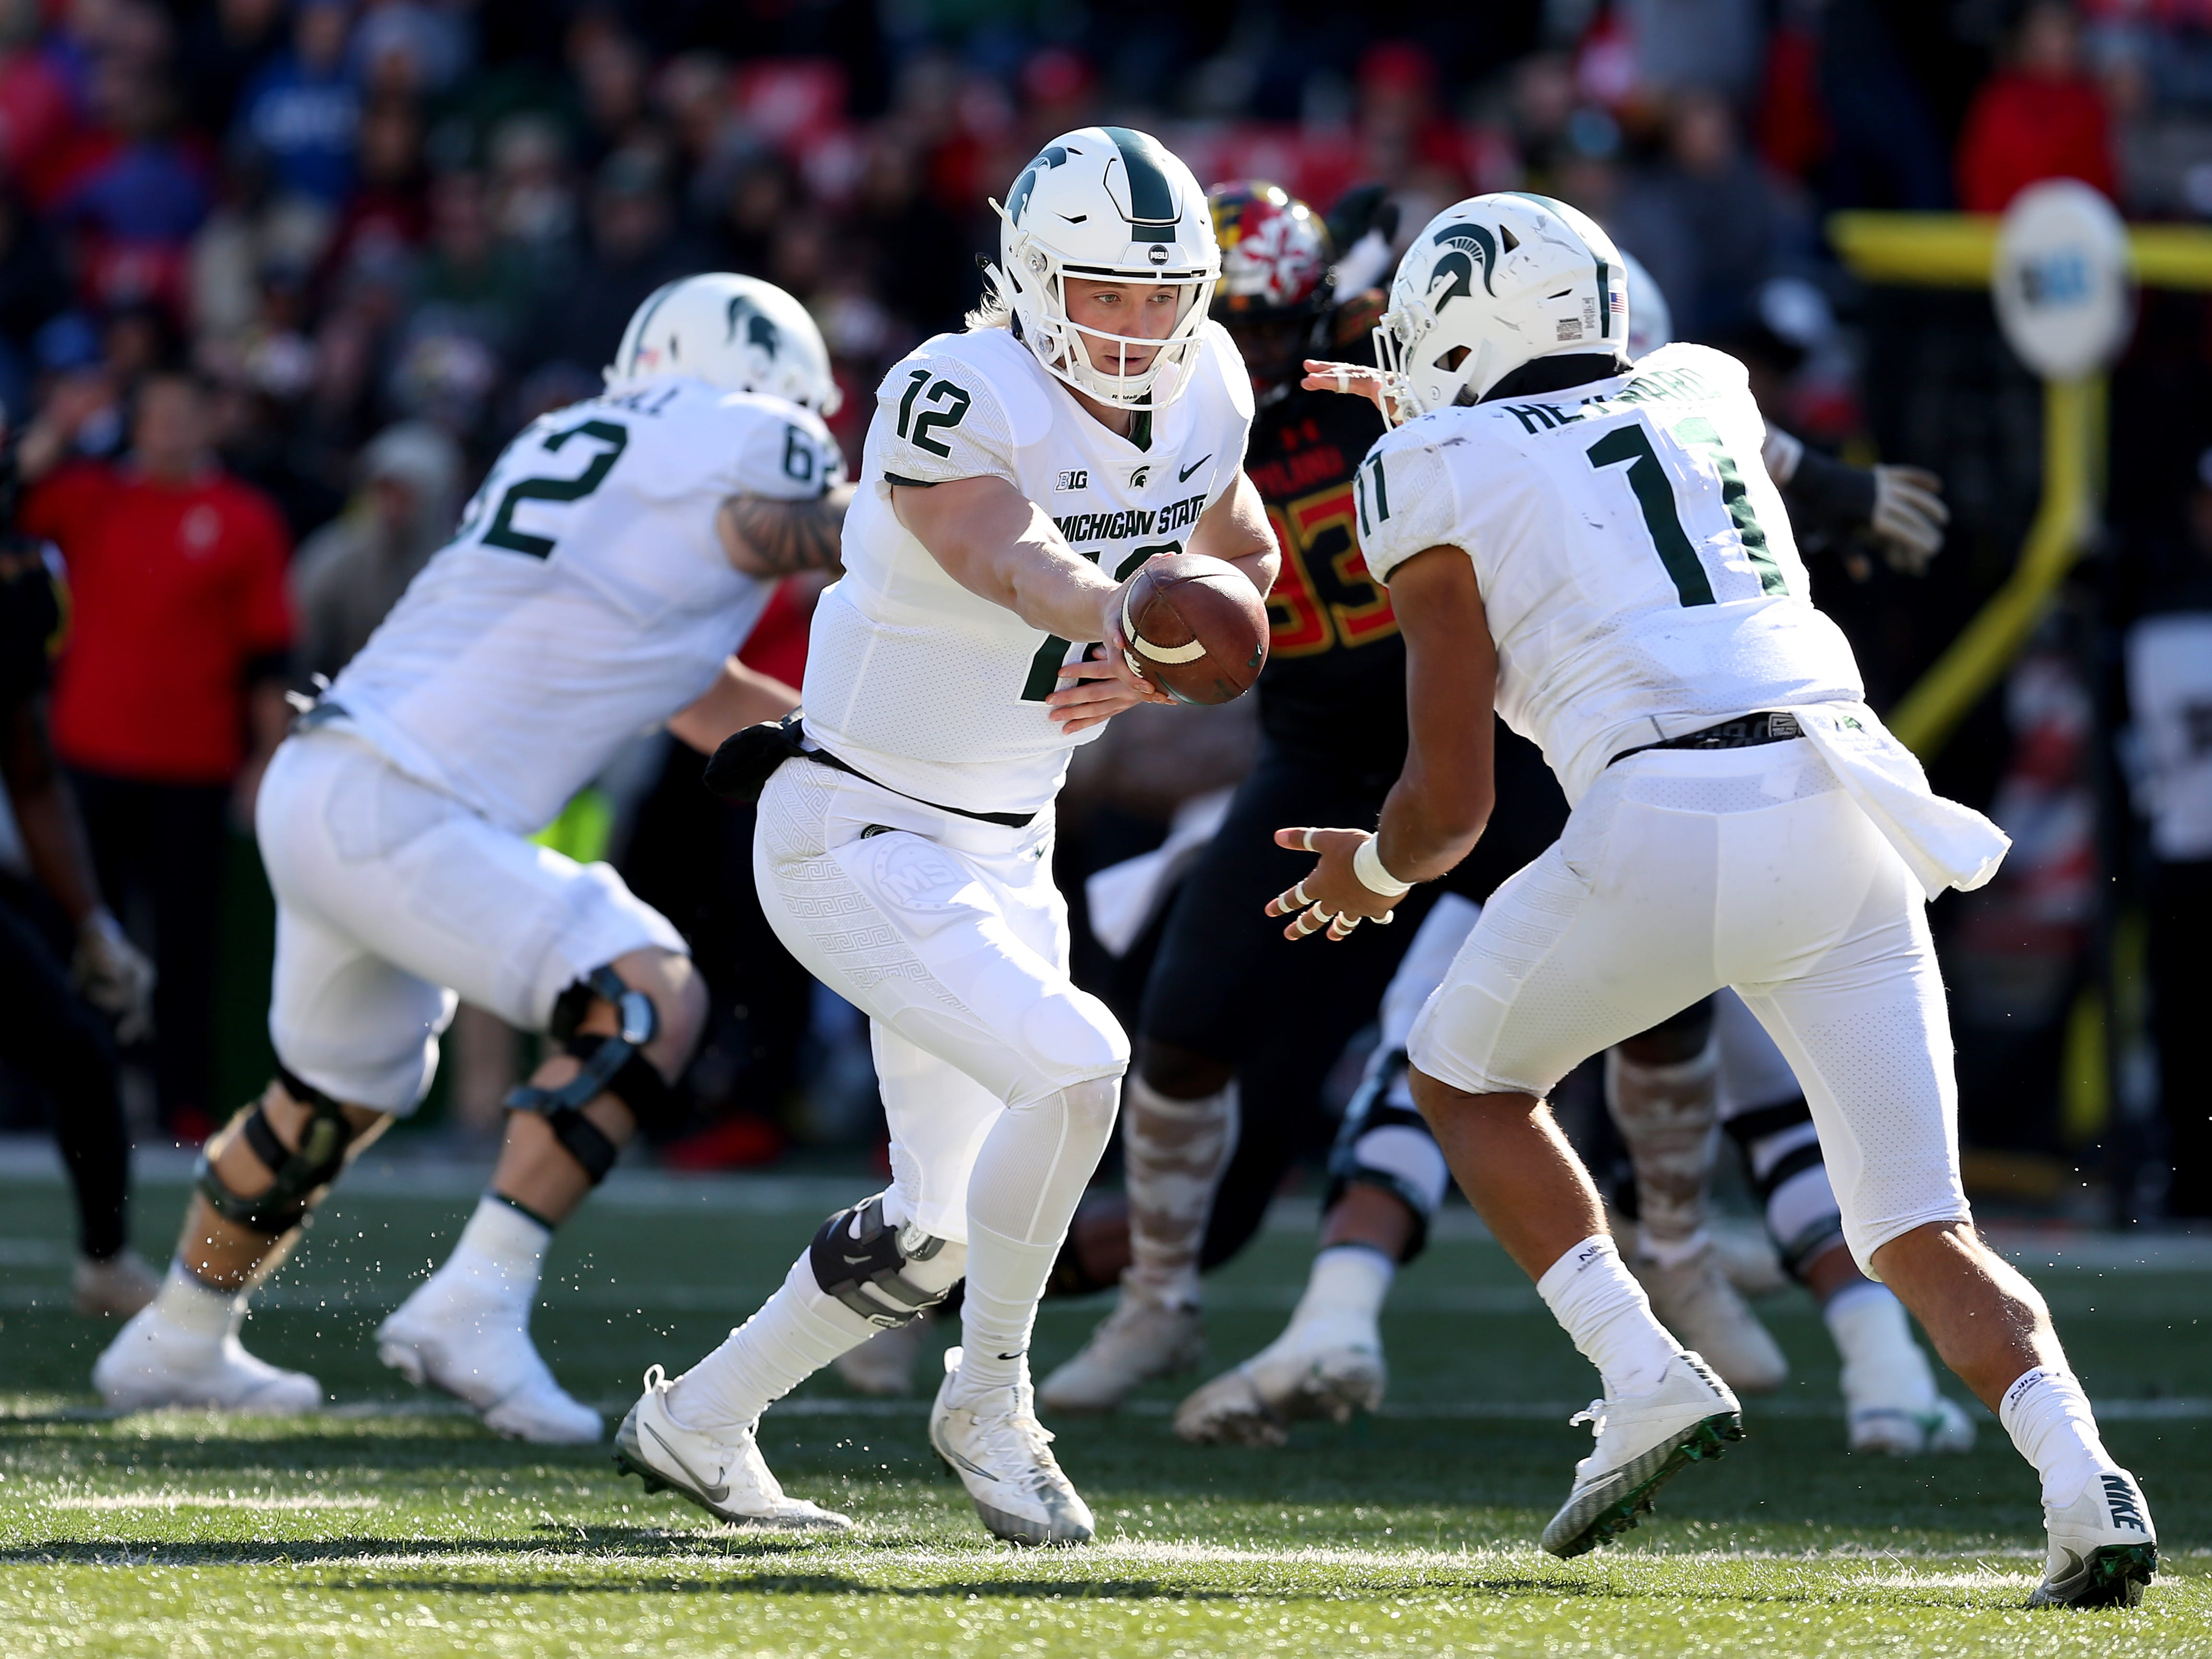 Rocky Lombardi #12 of the Michigan State Spartans hands the ball off to Connor Heyward #11 of the Michigan State Spartans during the second half against the Maryland Terrapins at Capital One Field on November 3, 2018 in College Park, Maryland.